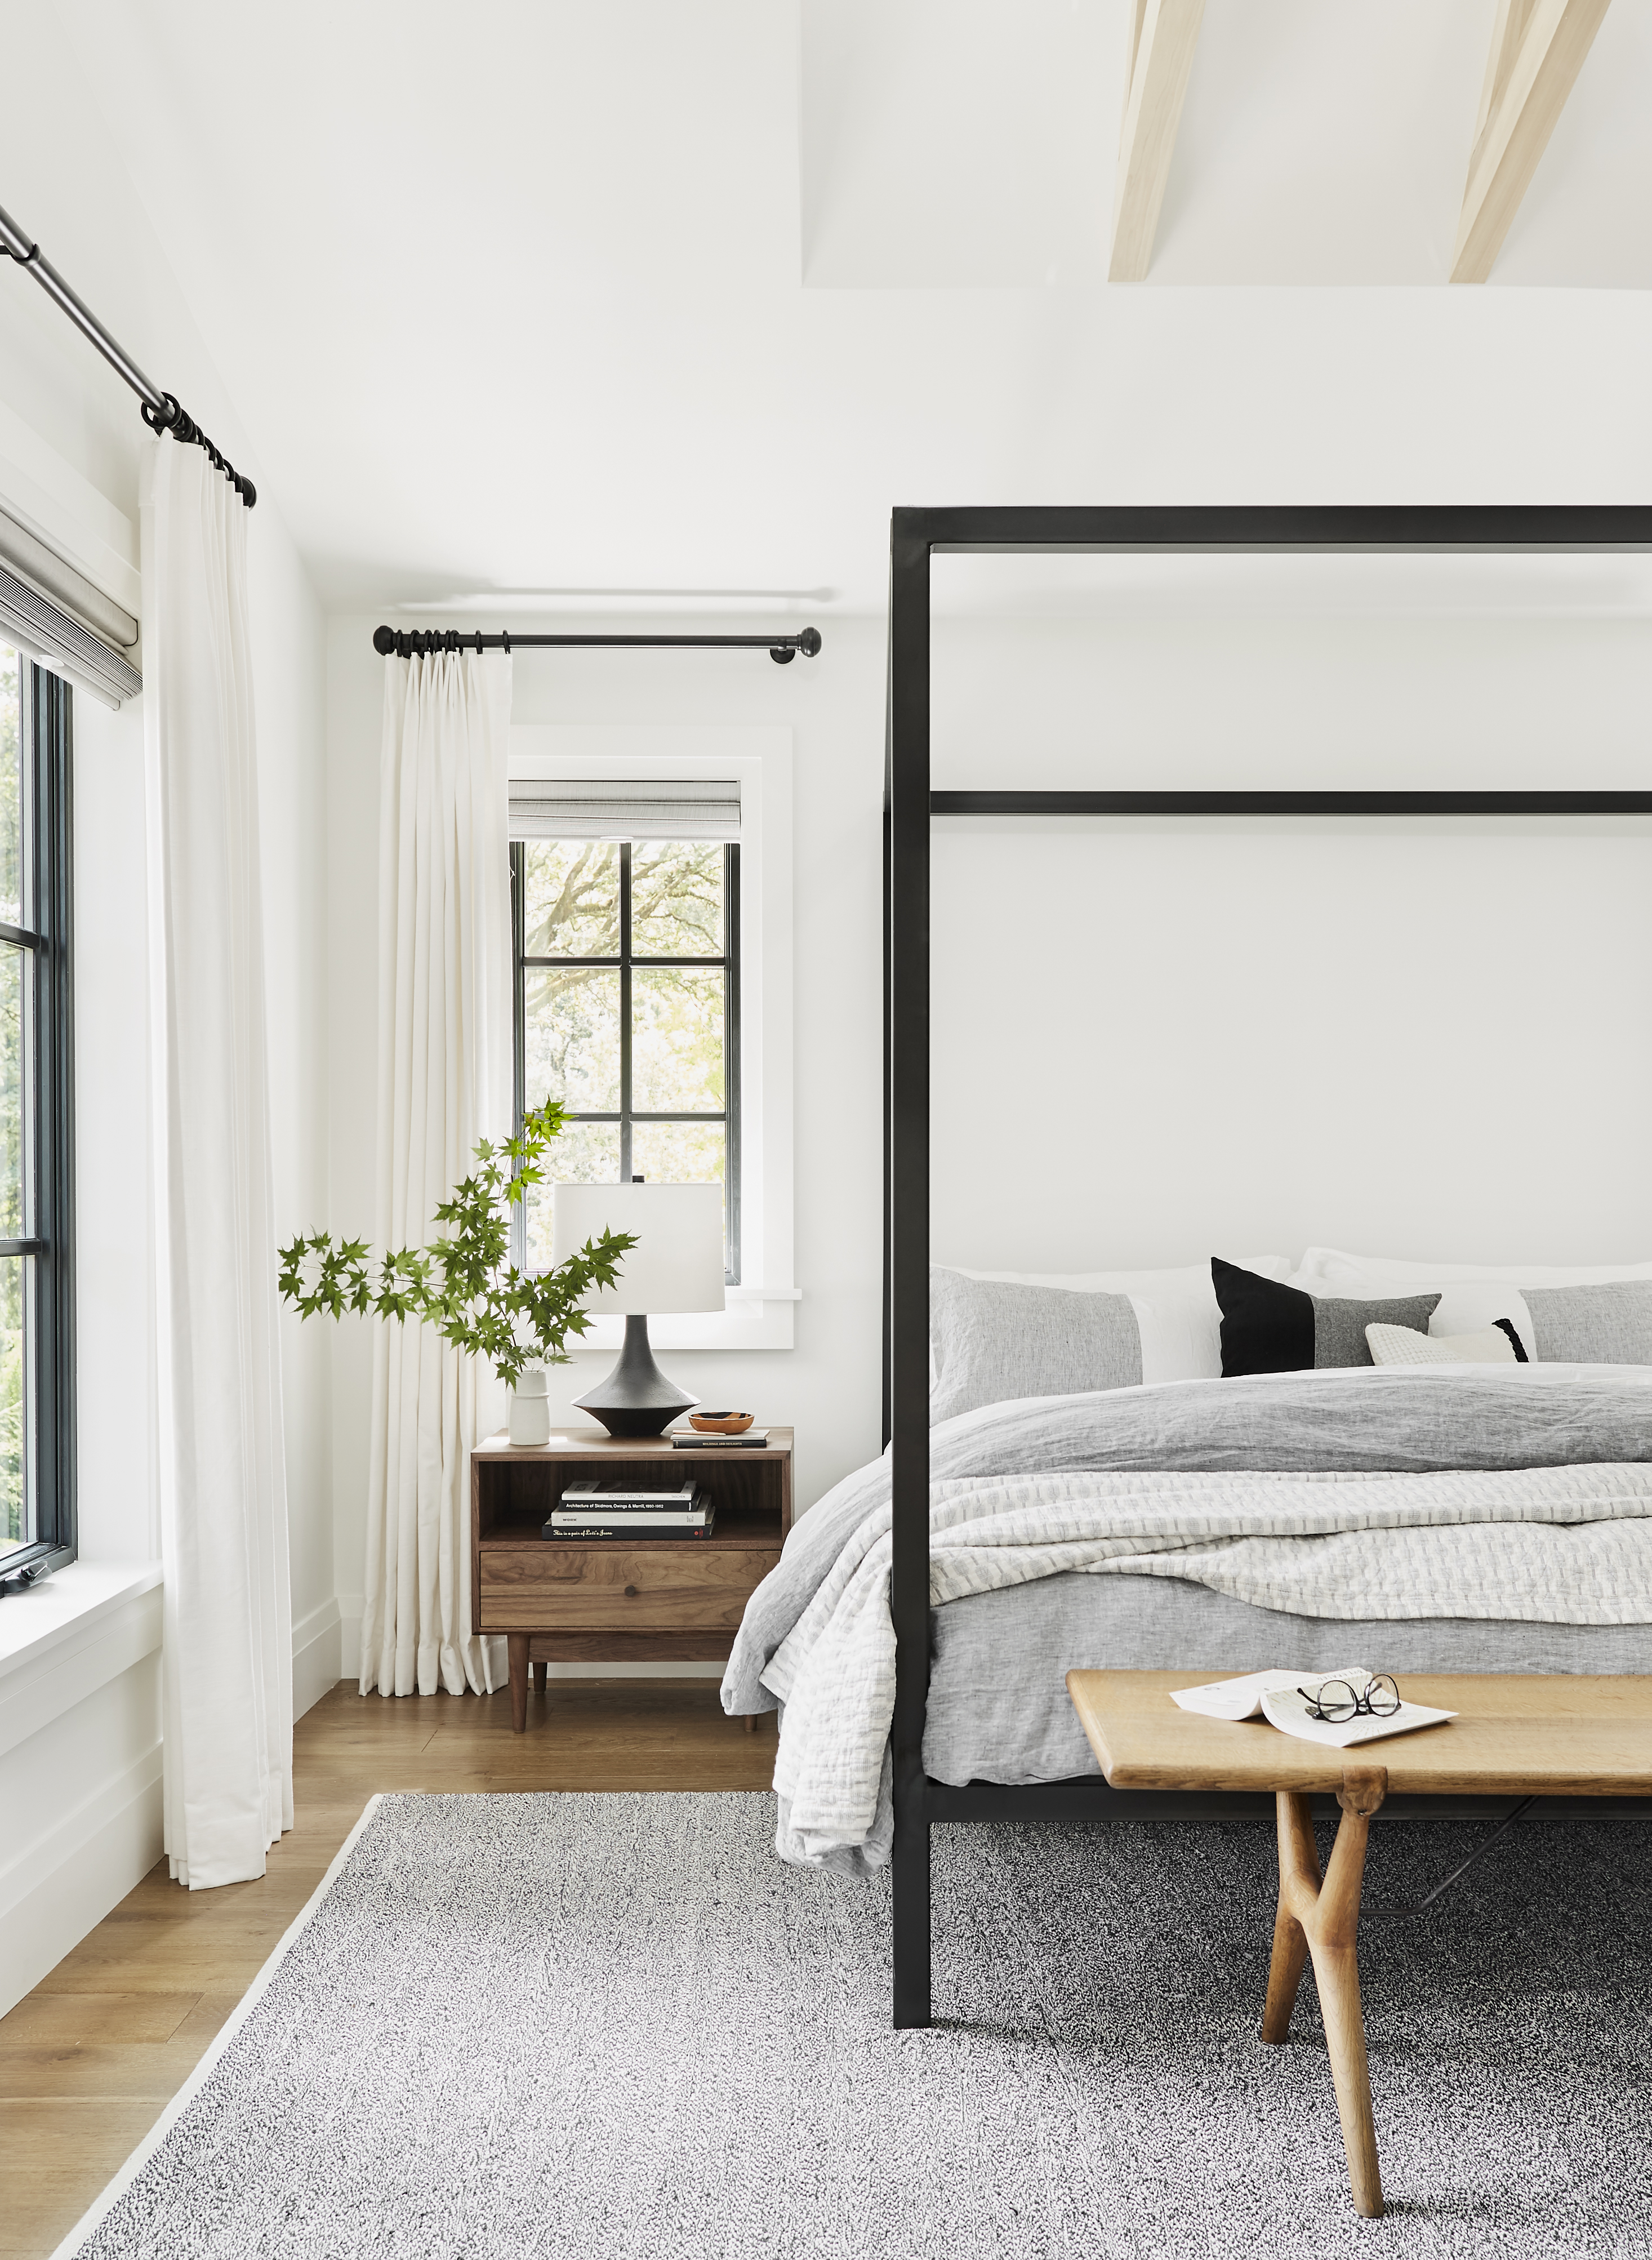 5 Genius Bedroom Layout Ideas We're Stealing From Interior Designers | Hunker